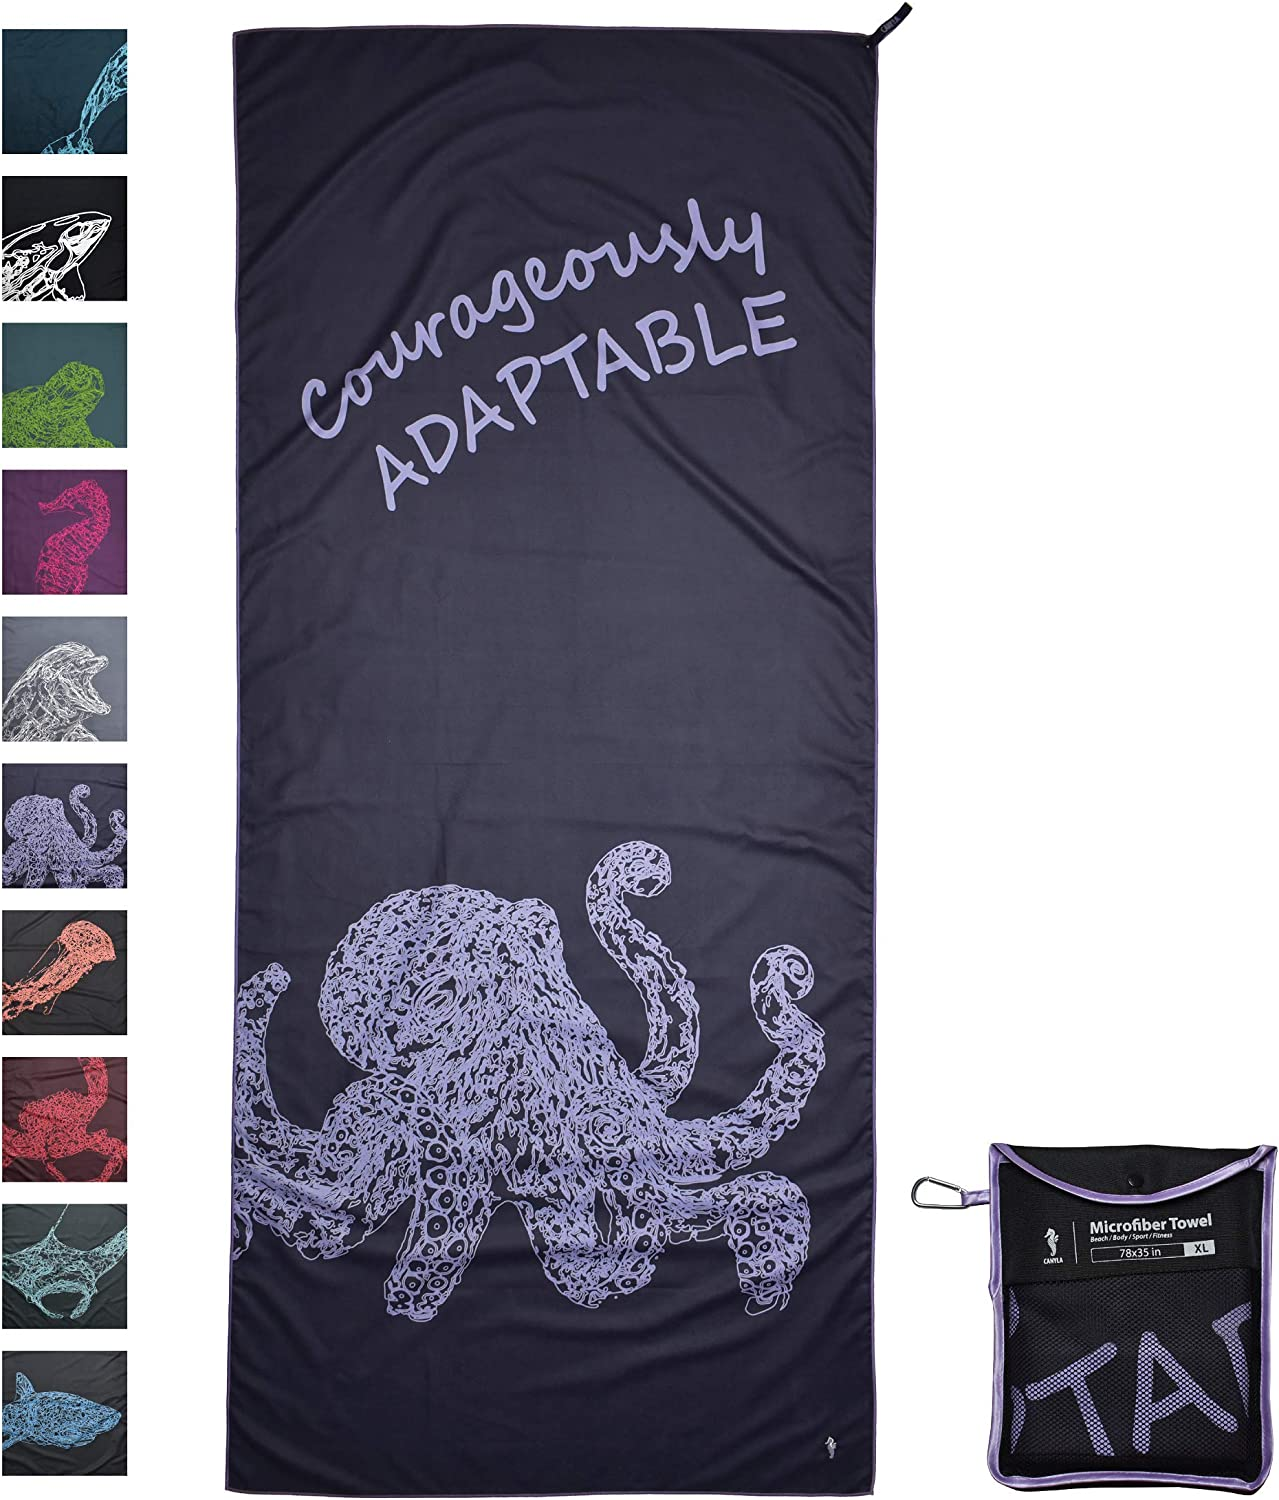 CANYLA Oversized Quick Dry Microfiber Beach & Travel Towel: XL 78x35, Lightweight & Compact, Fast Drying, Absorbent, Sand Free, Towel for Travel, Beach, Swim, Pool, Hike, Camp; Extra Large